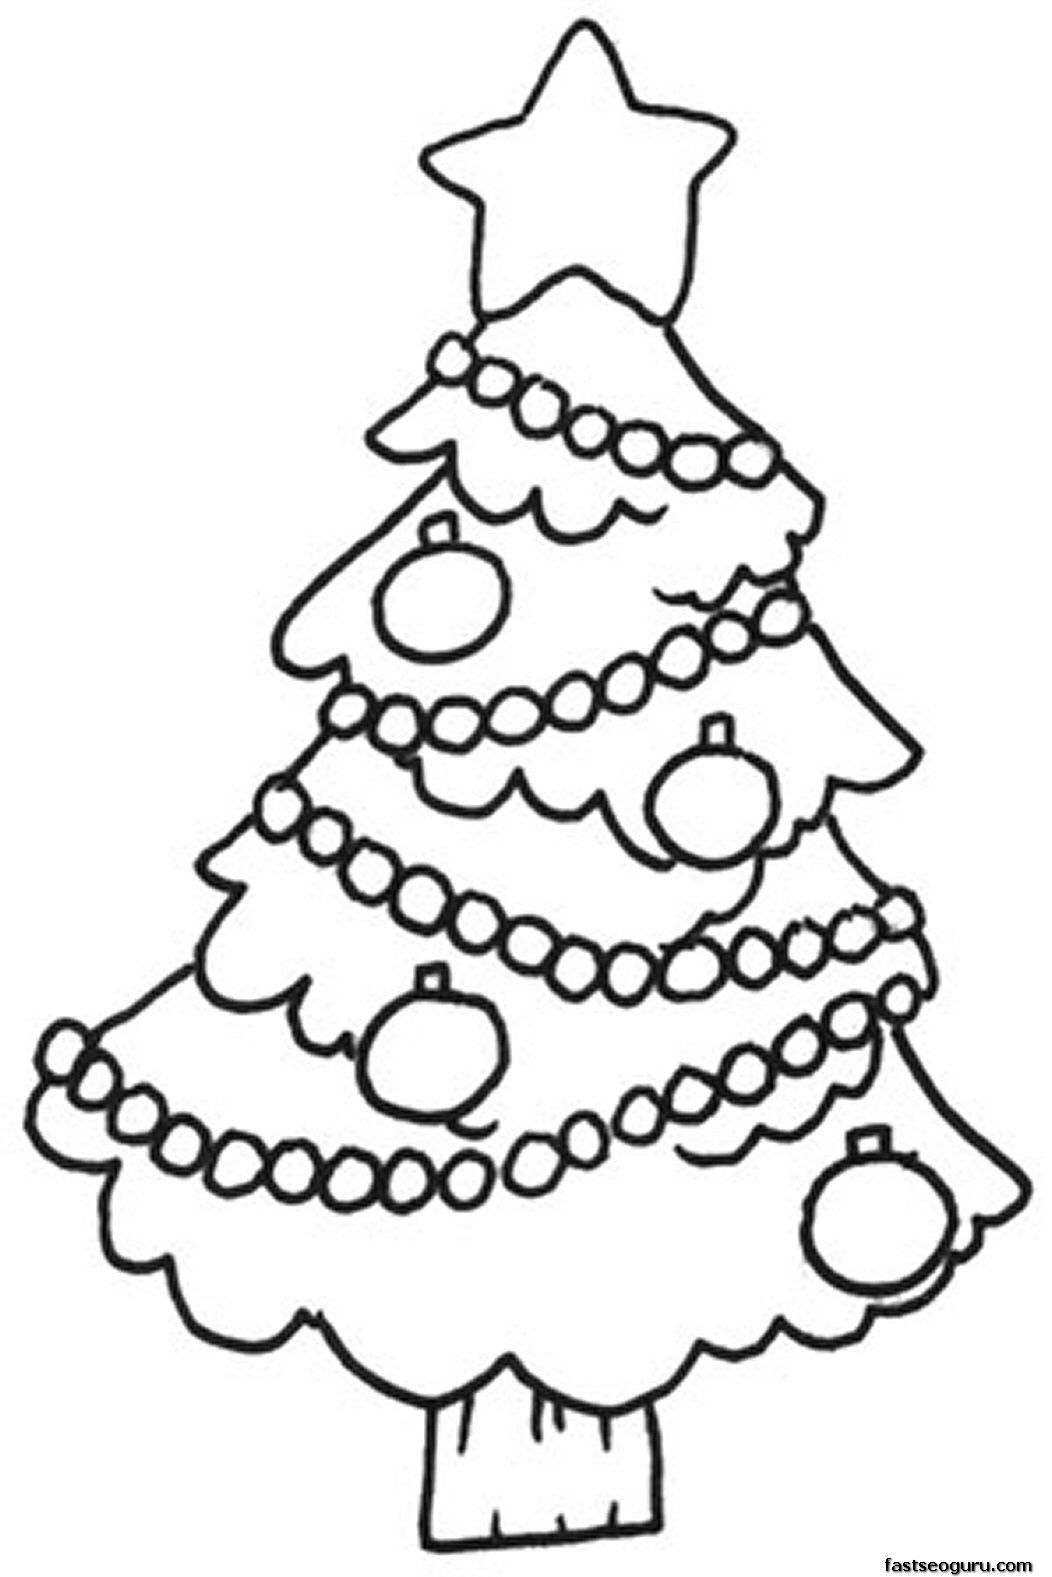 christmas tree coloring pages for kids - Google Search | coloring ...